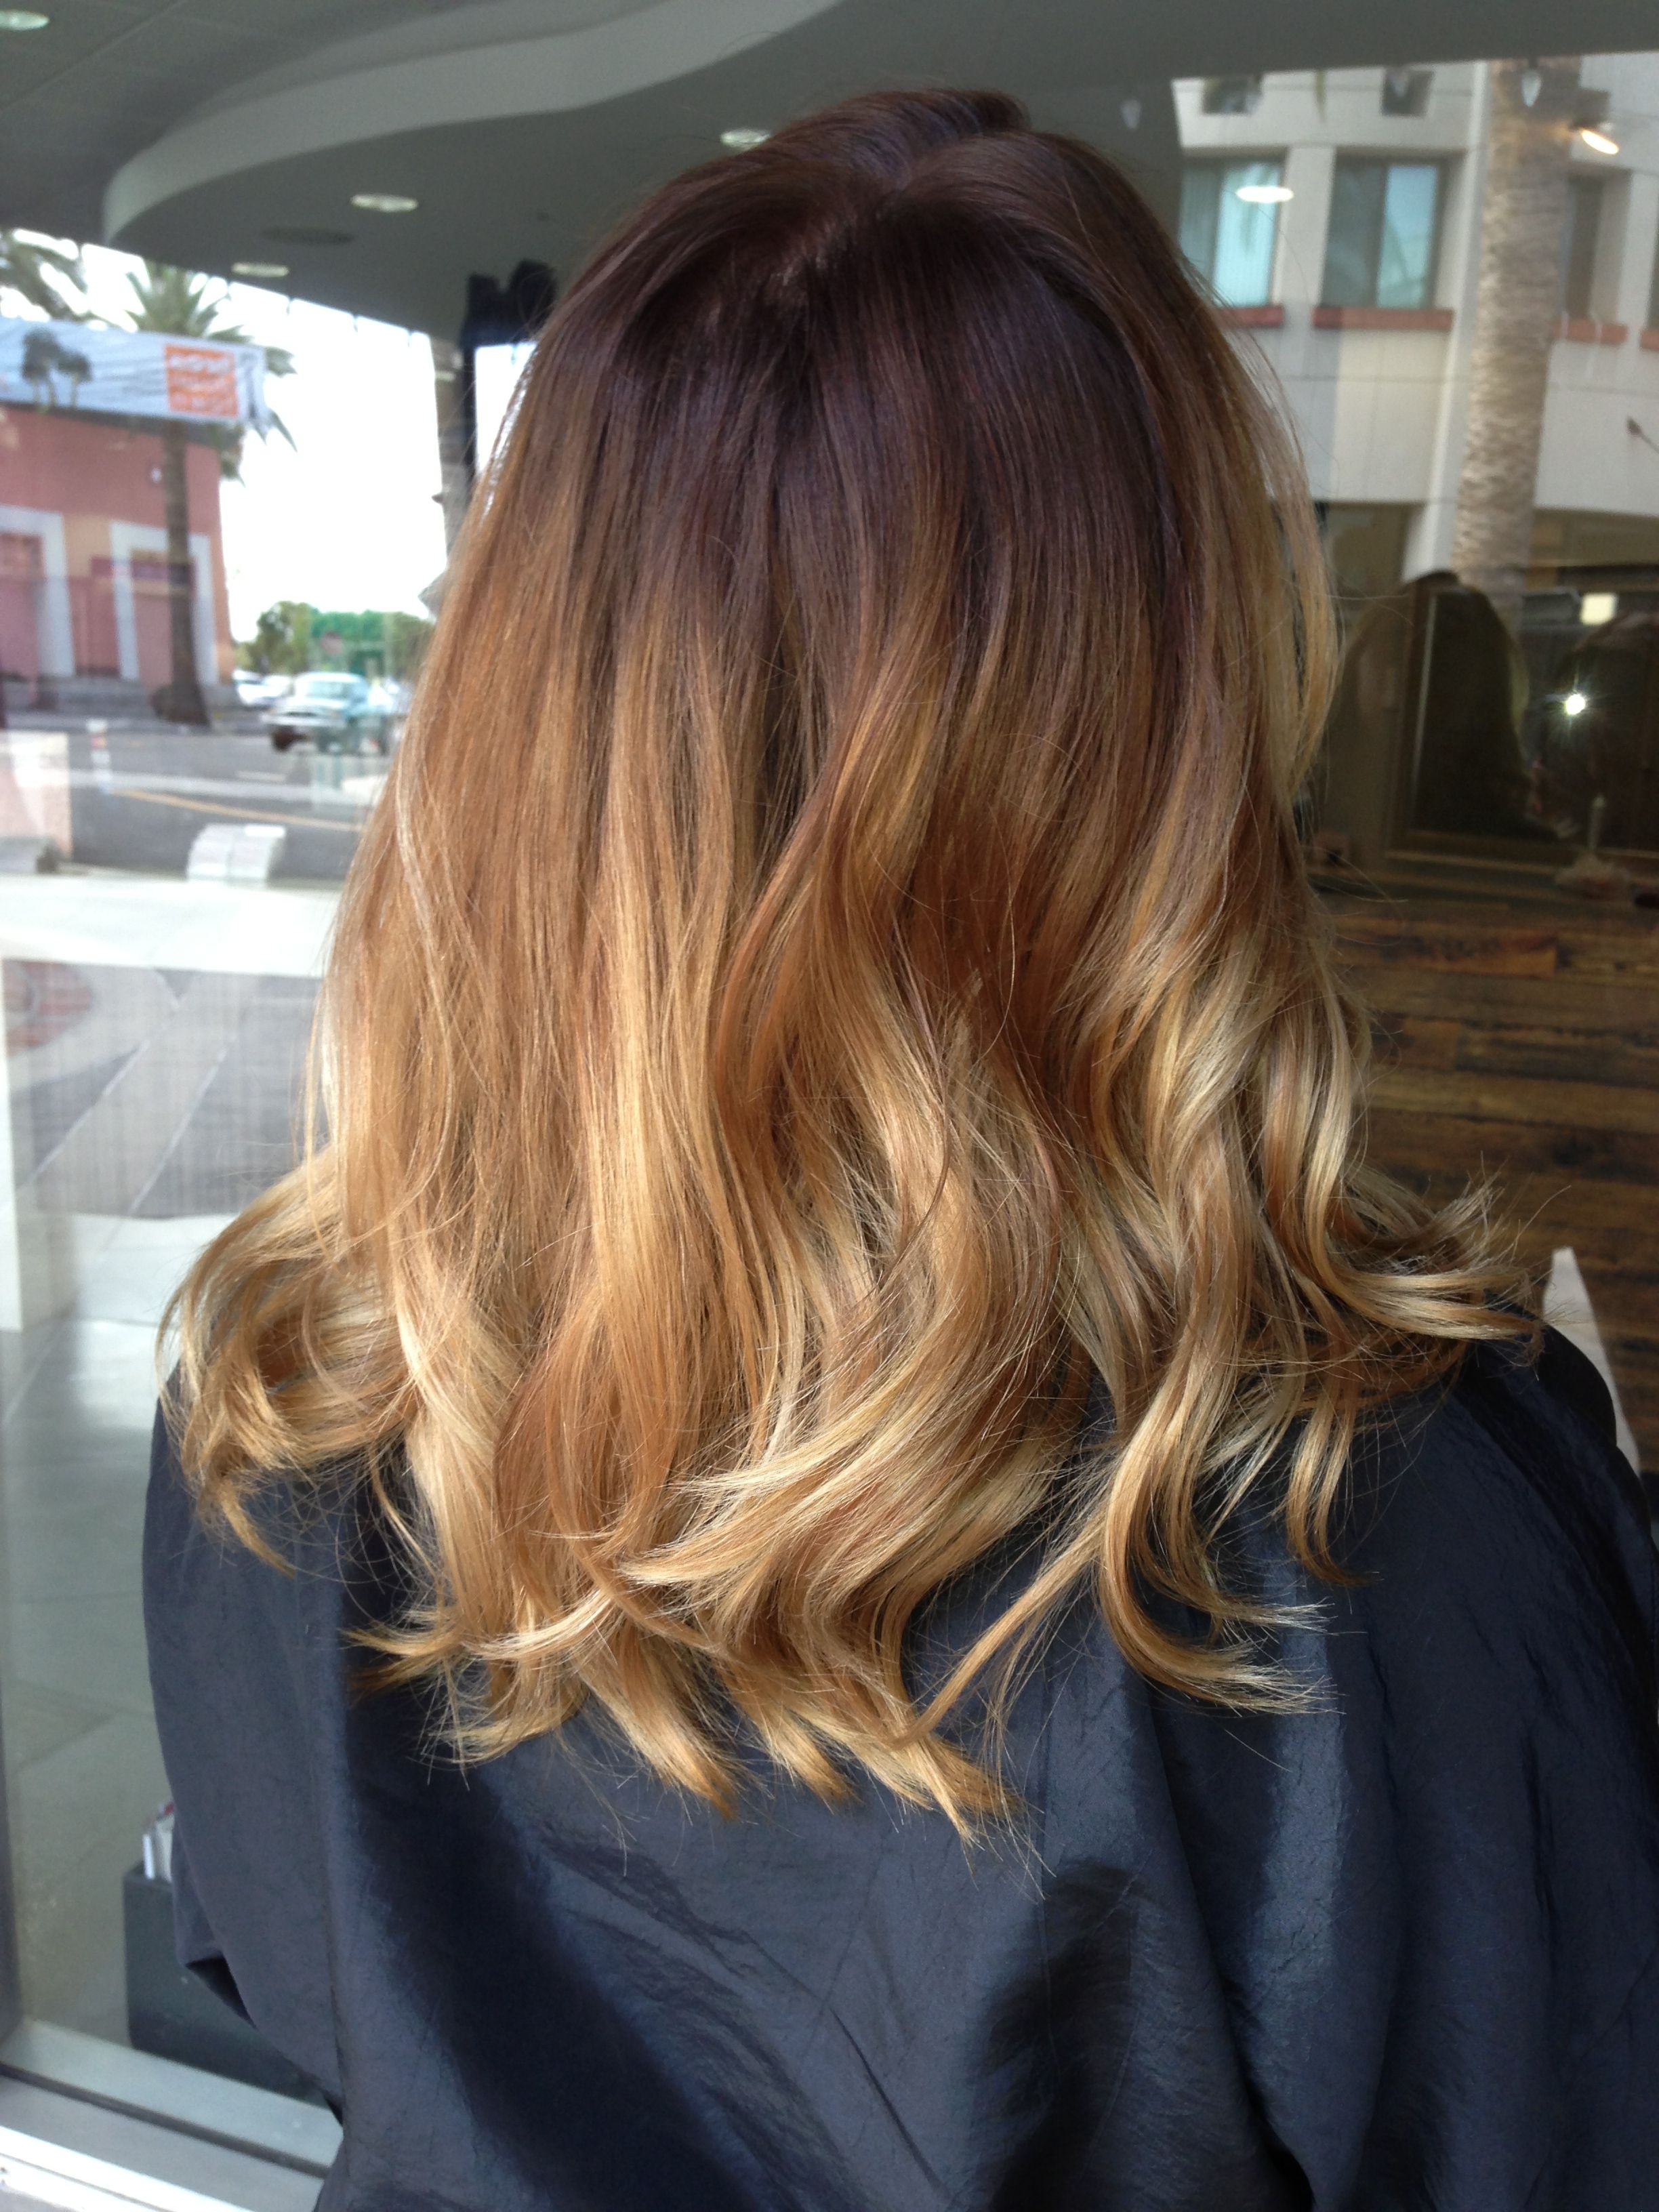 Pin By Briza Bot On Ombre By Briza Medium Hair Styles Balayage Hair Hair Styles